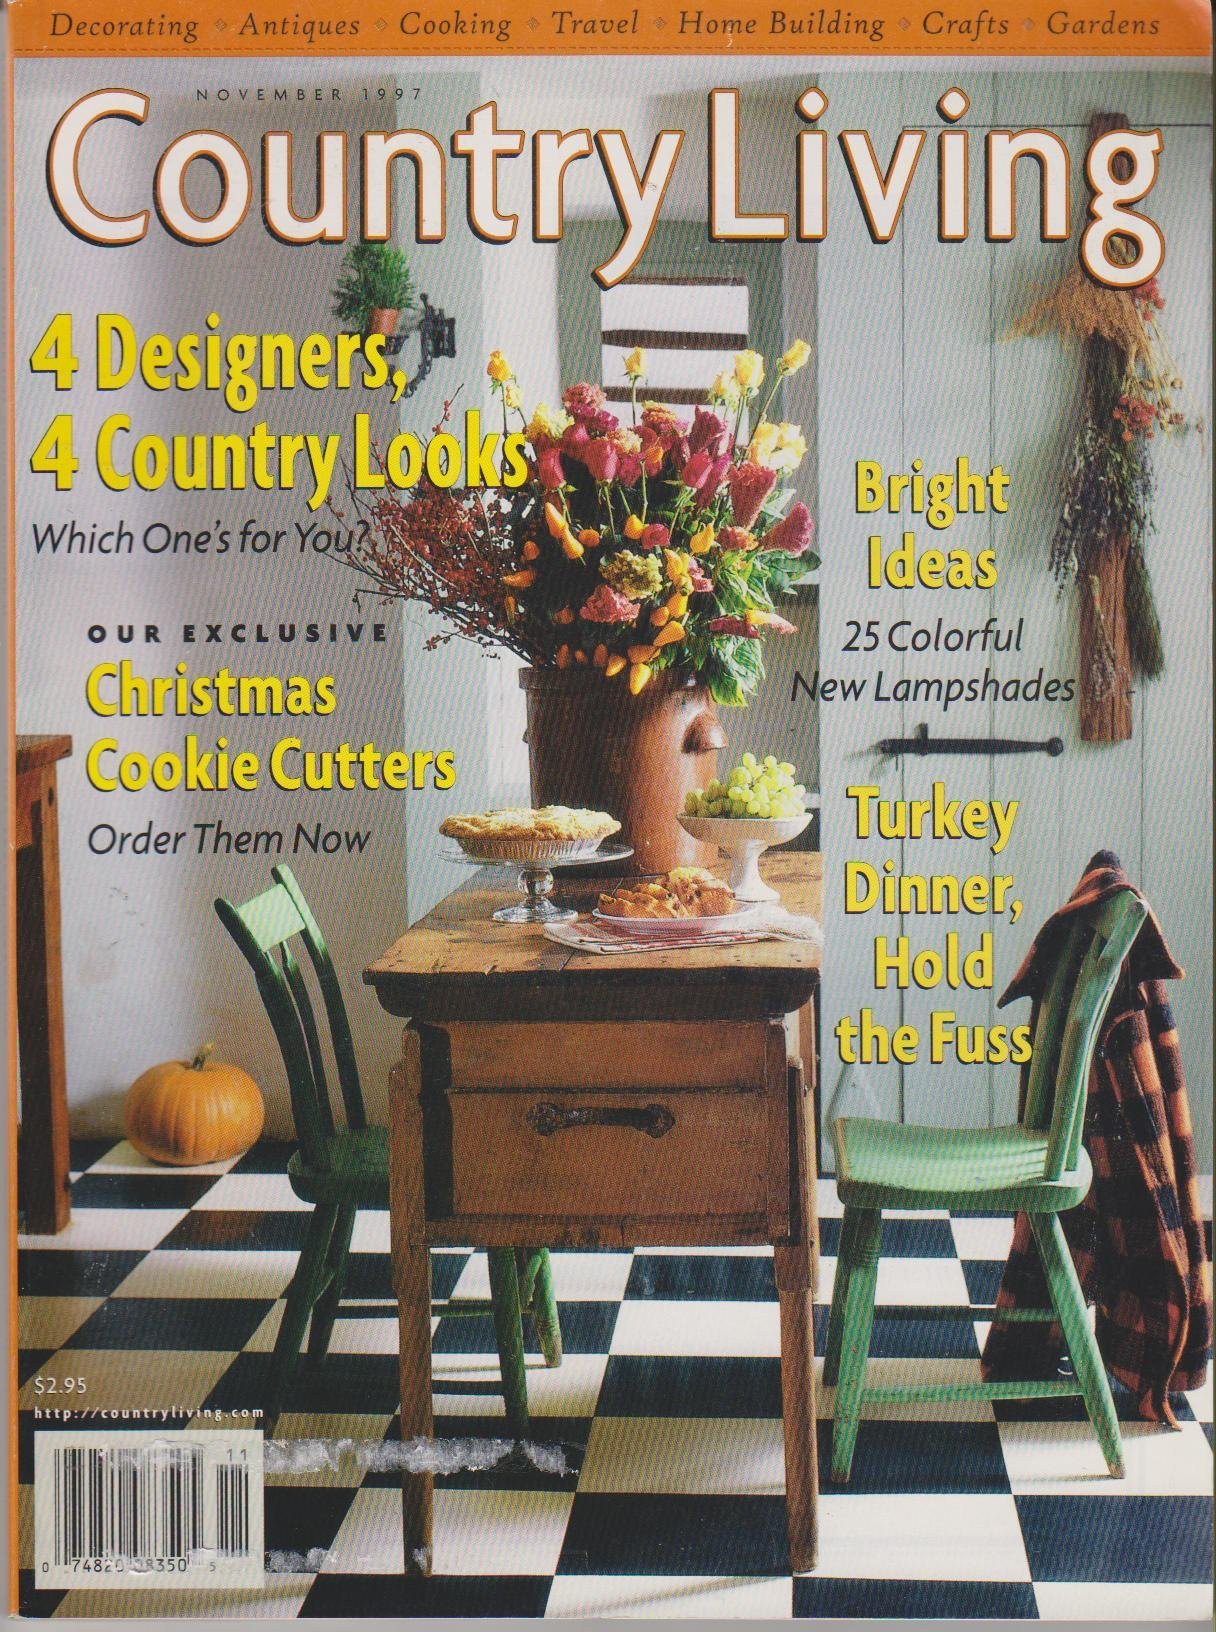 Country Living Magazine November 1997 Vol. 20 No. 11 ... on country cottage house plans, country living tile, country style house plans, small country house plans, country school house plans, country living kitchens, country southern house plans, country living paint by number, wood country house plans, english country house plans, country house plans with porches, country living photography, low country house plans, country living bath and shower, country living toys, country living rooms, country ranch house plans, french country house plans, country living painting, country living magazine,